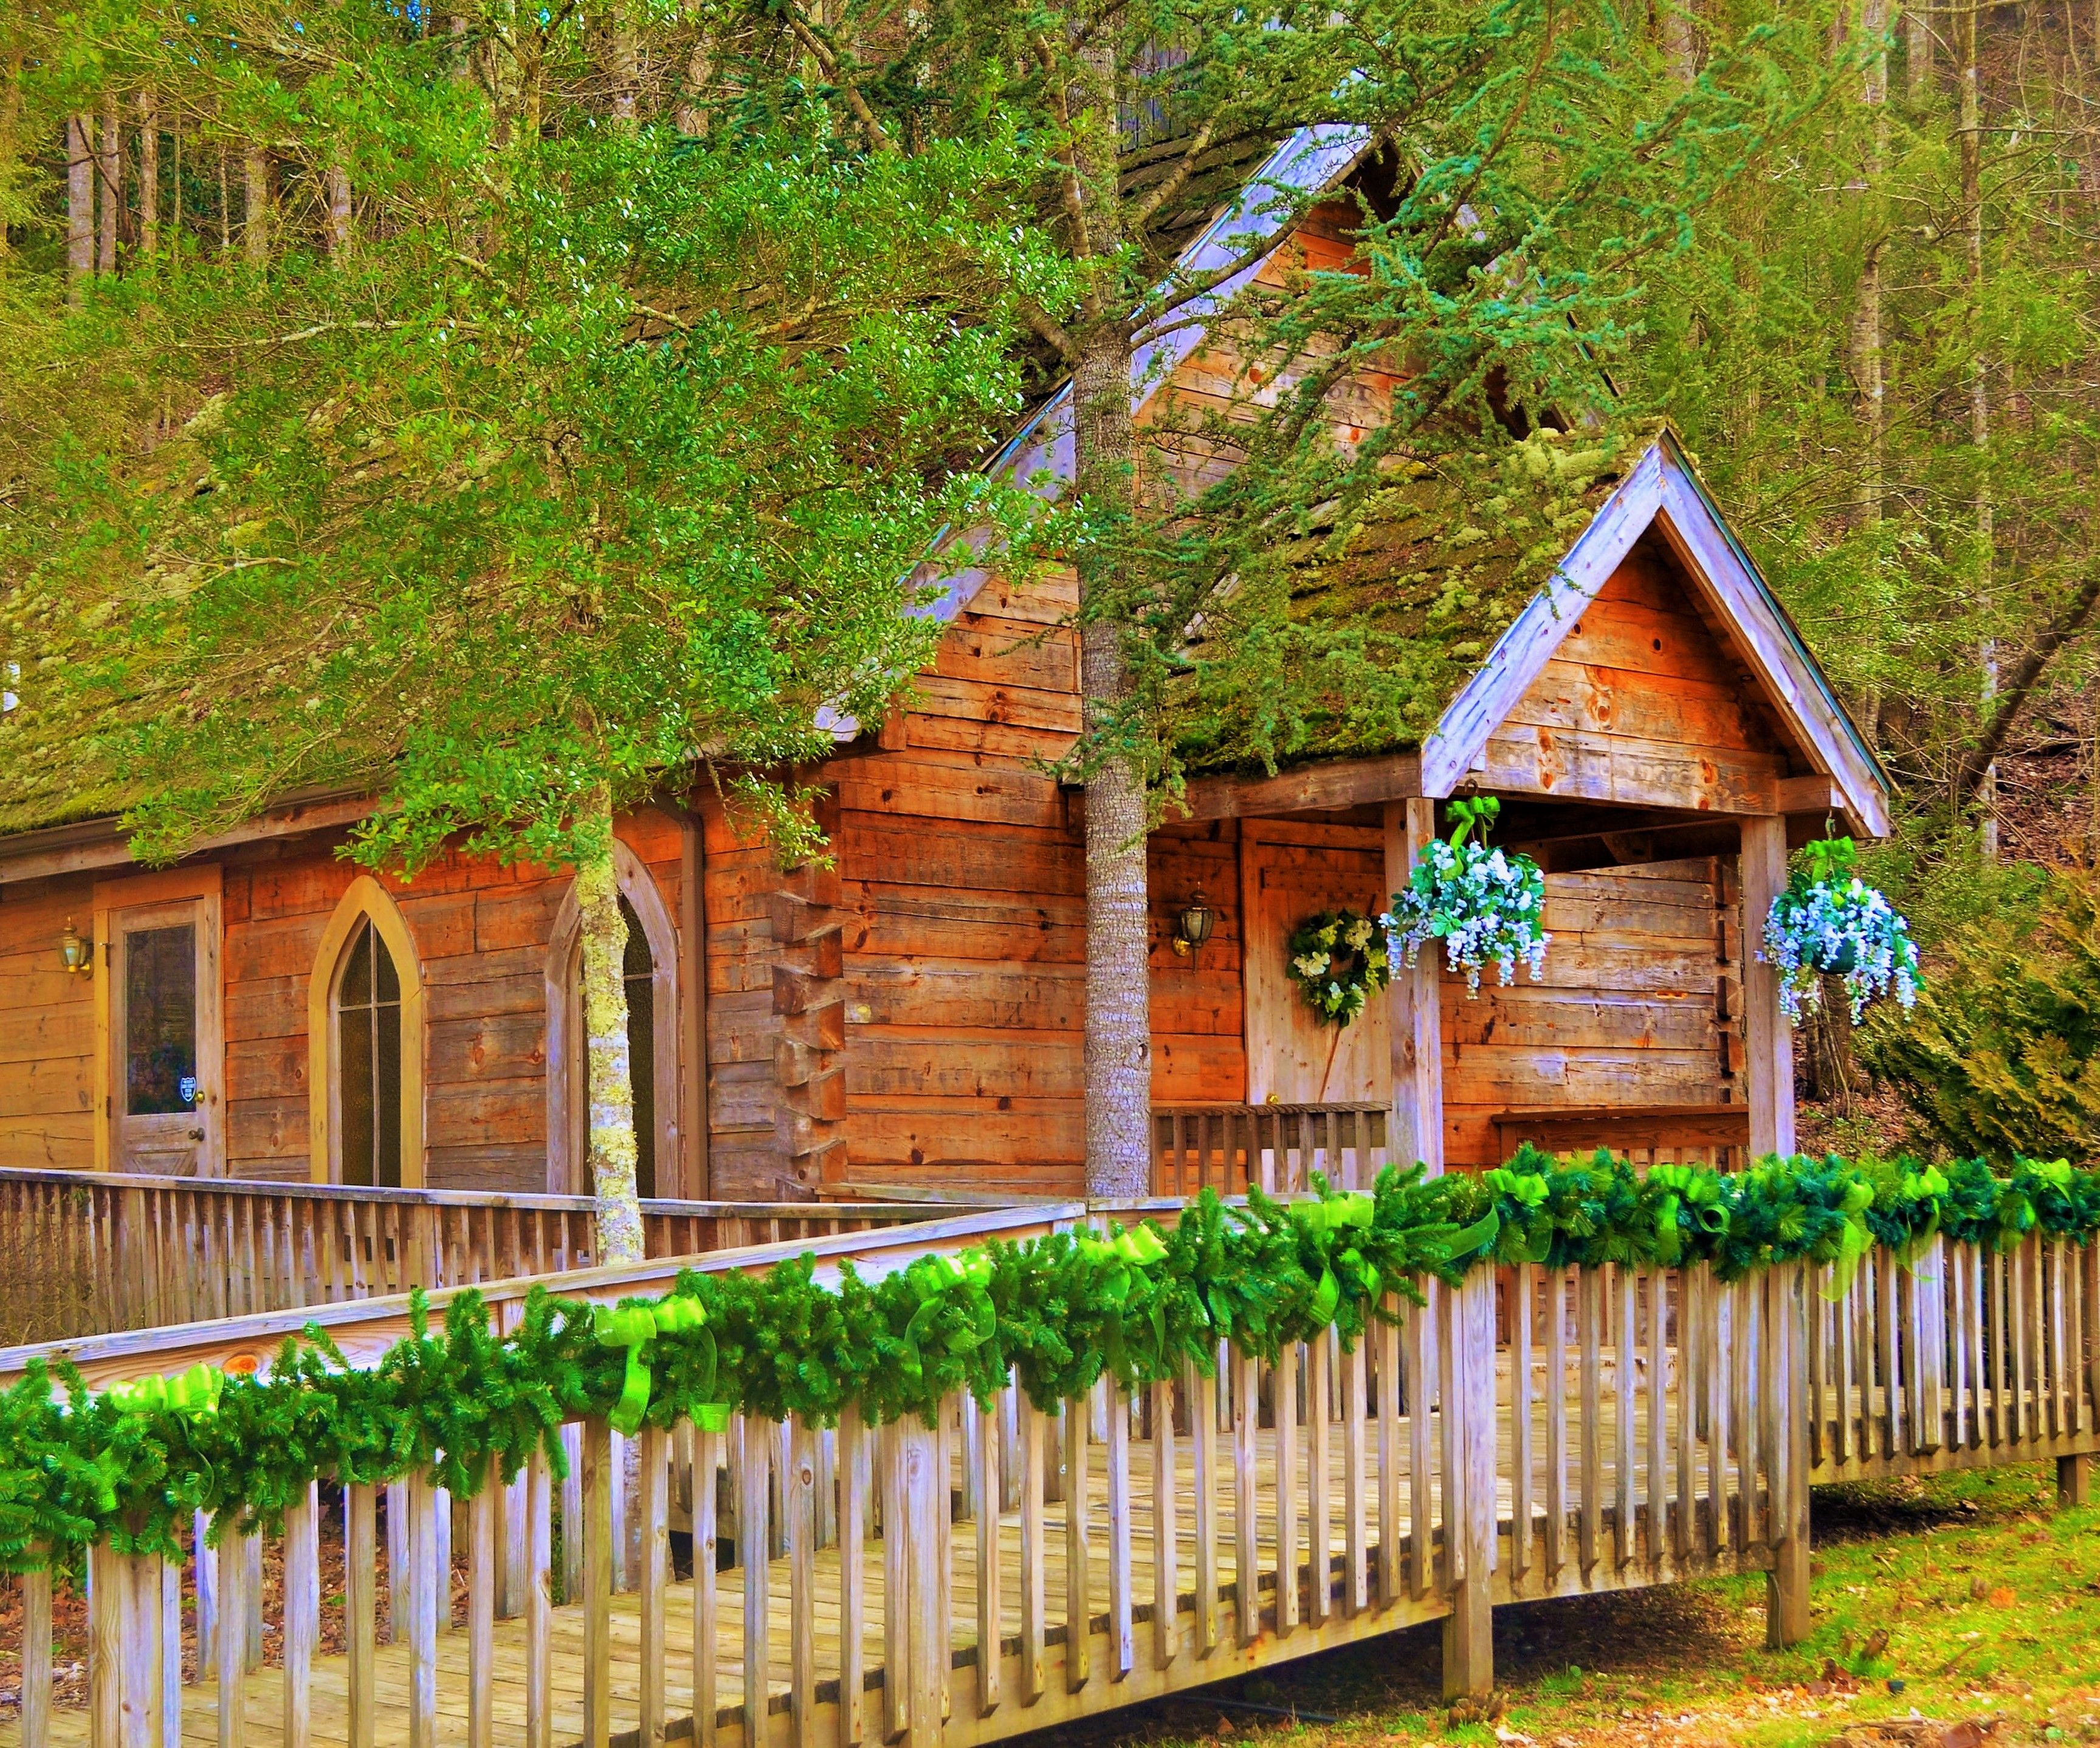 Fiddlers Dream Chapel Is Elegantly Decorated And One Of The Quaintest Rustic Log Wedding